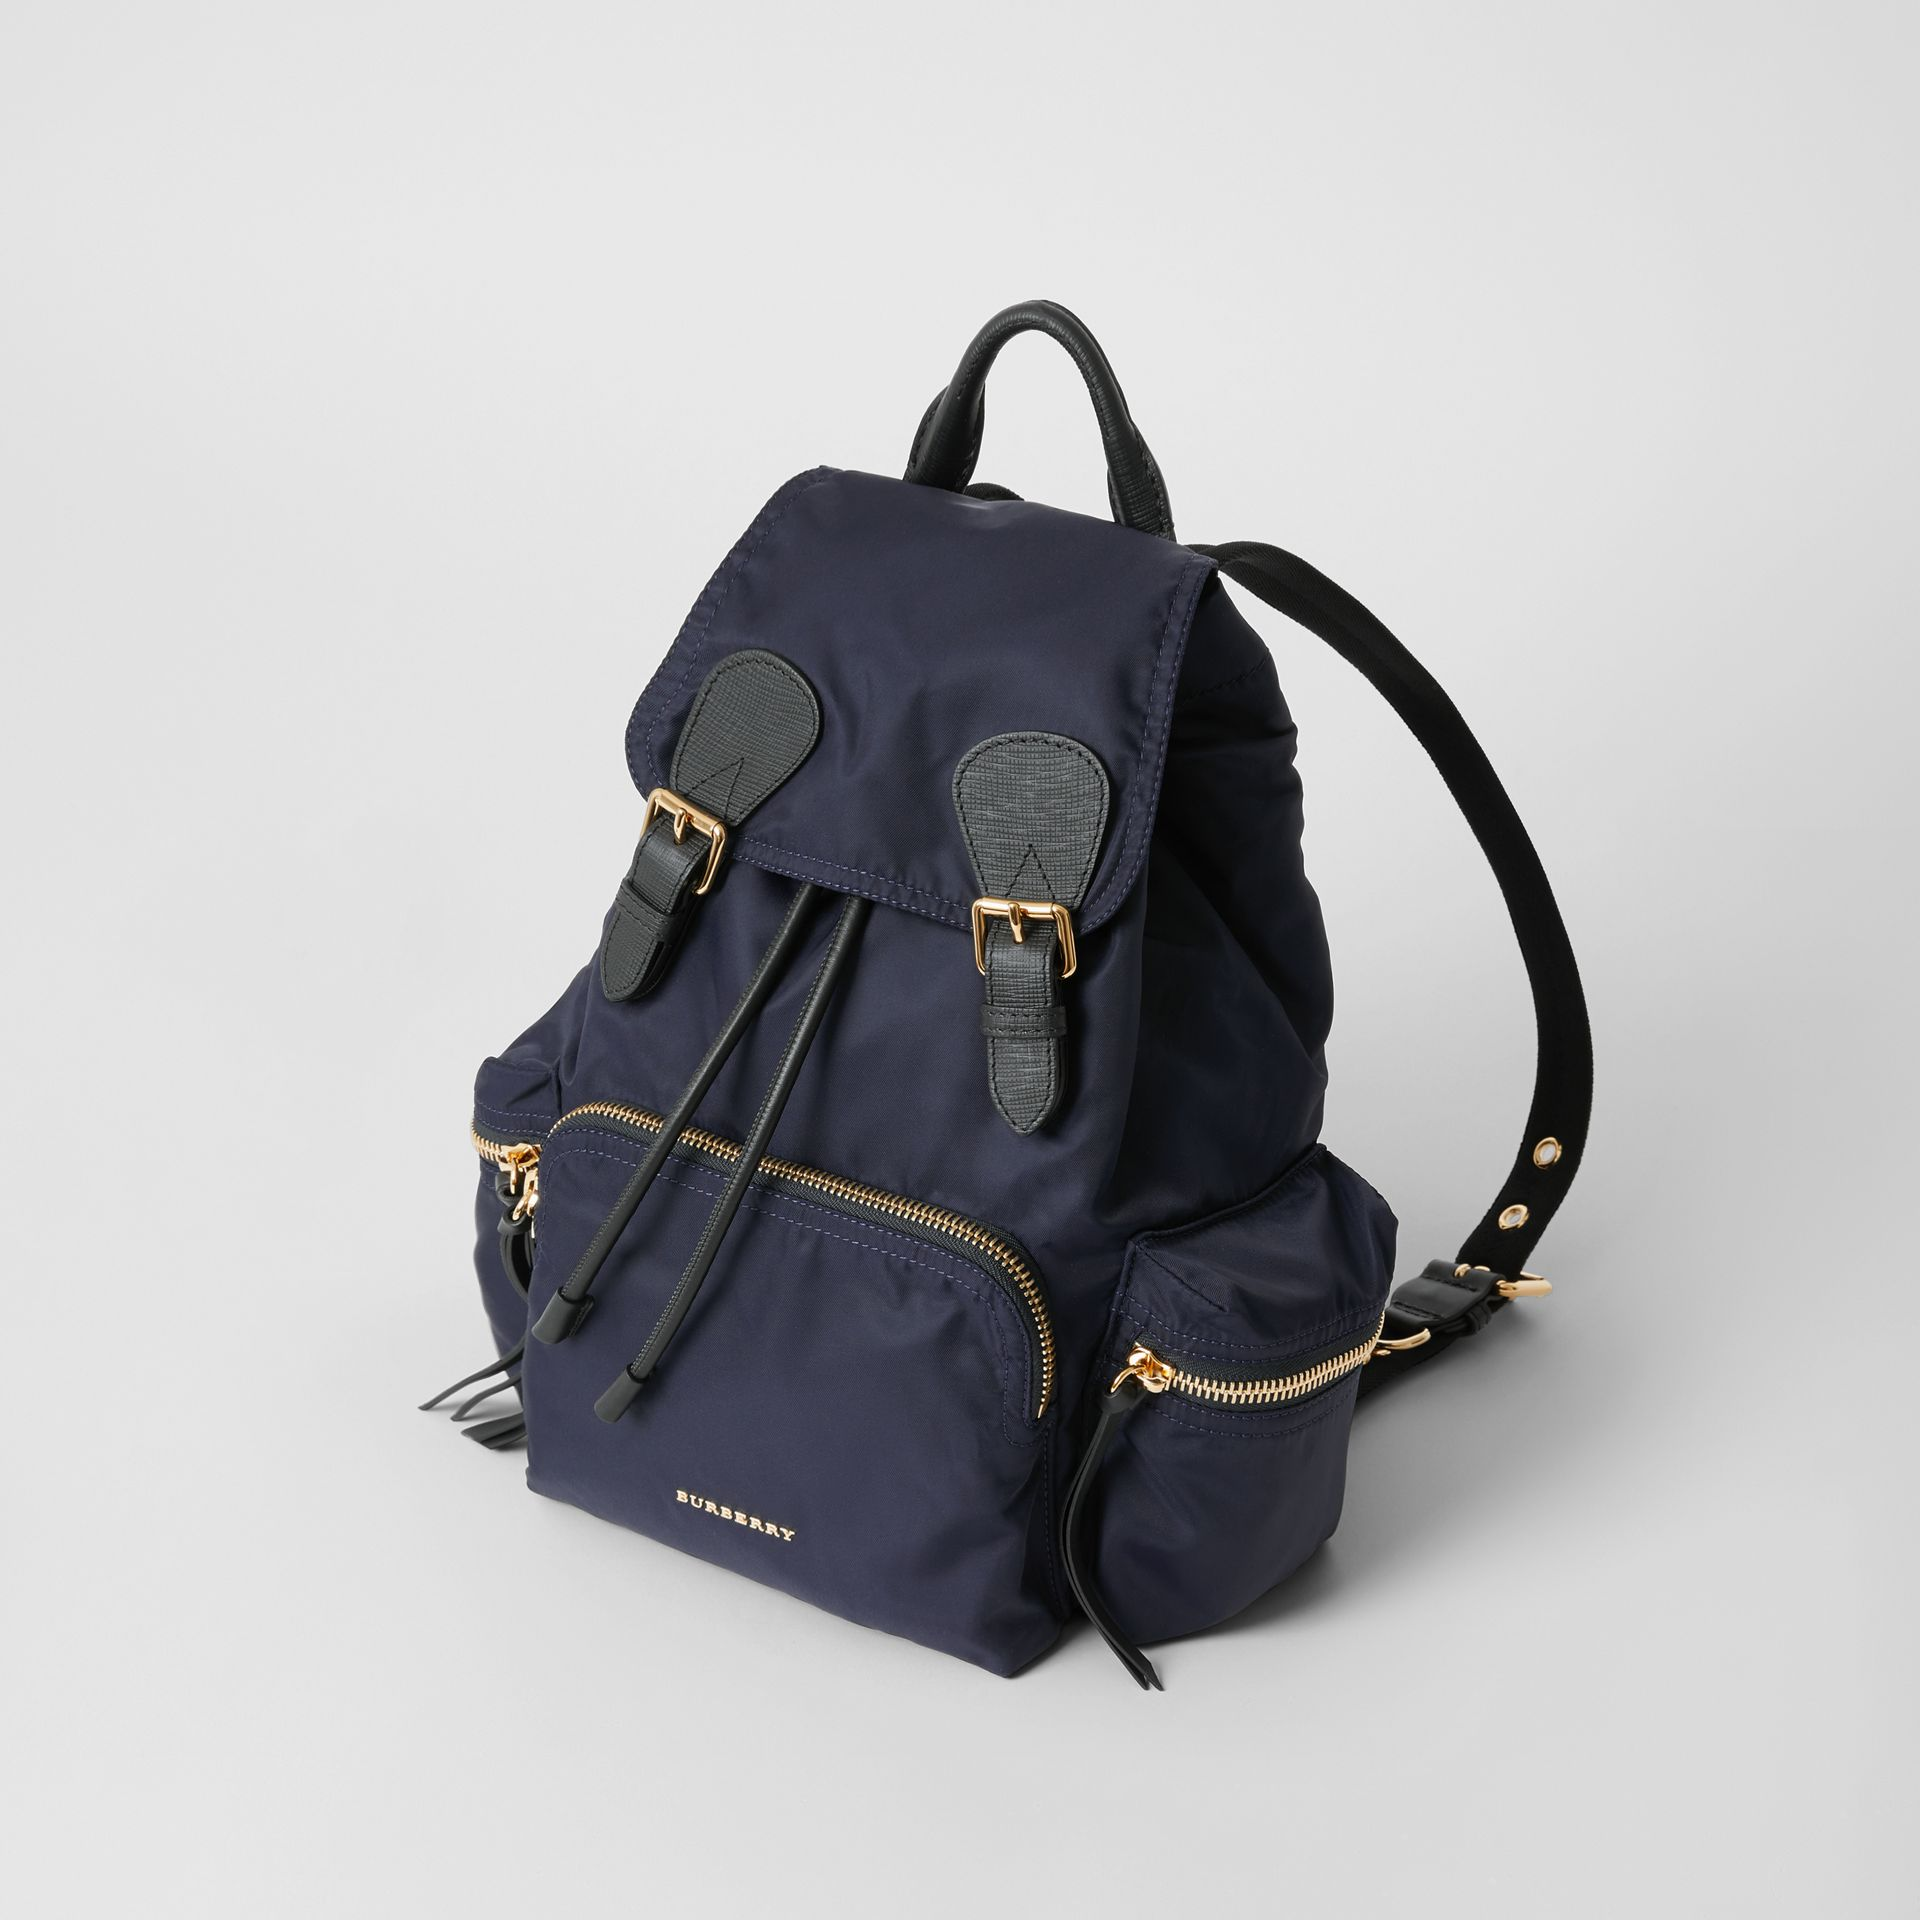 Zaino The Rucksack medio in nylon tecnico e pelle (Blu Inchiostro) - Donna | Burberry - immagine della galleria 6